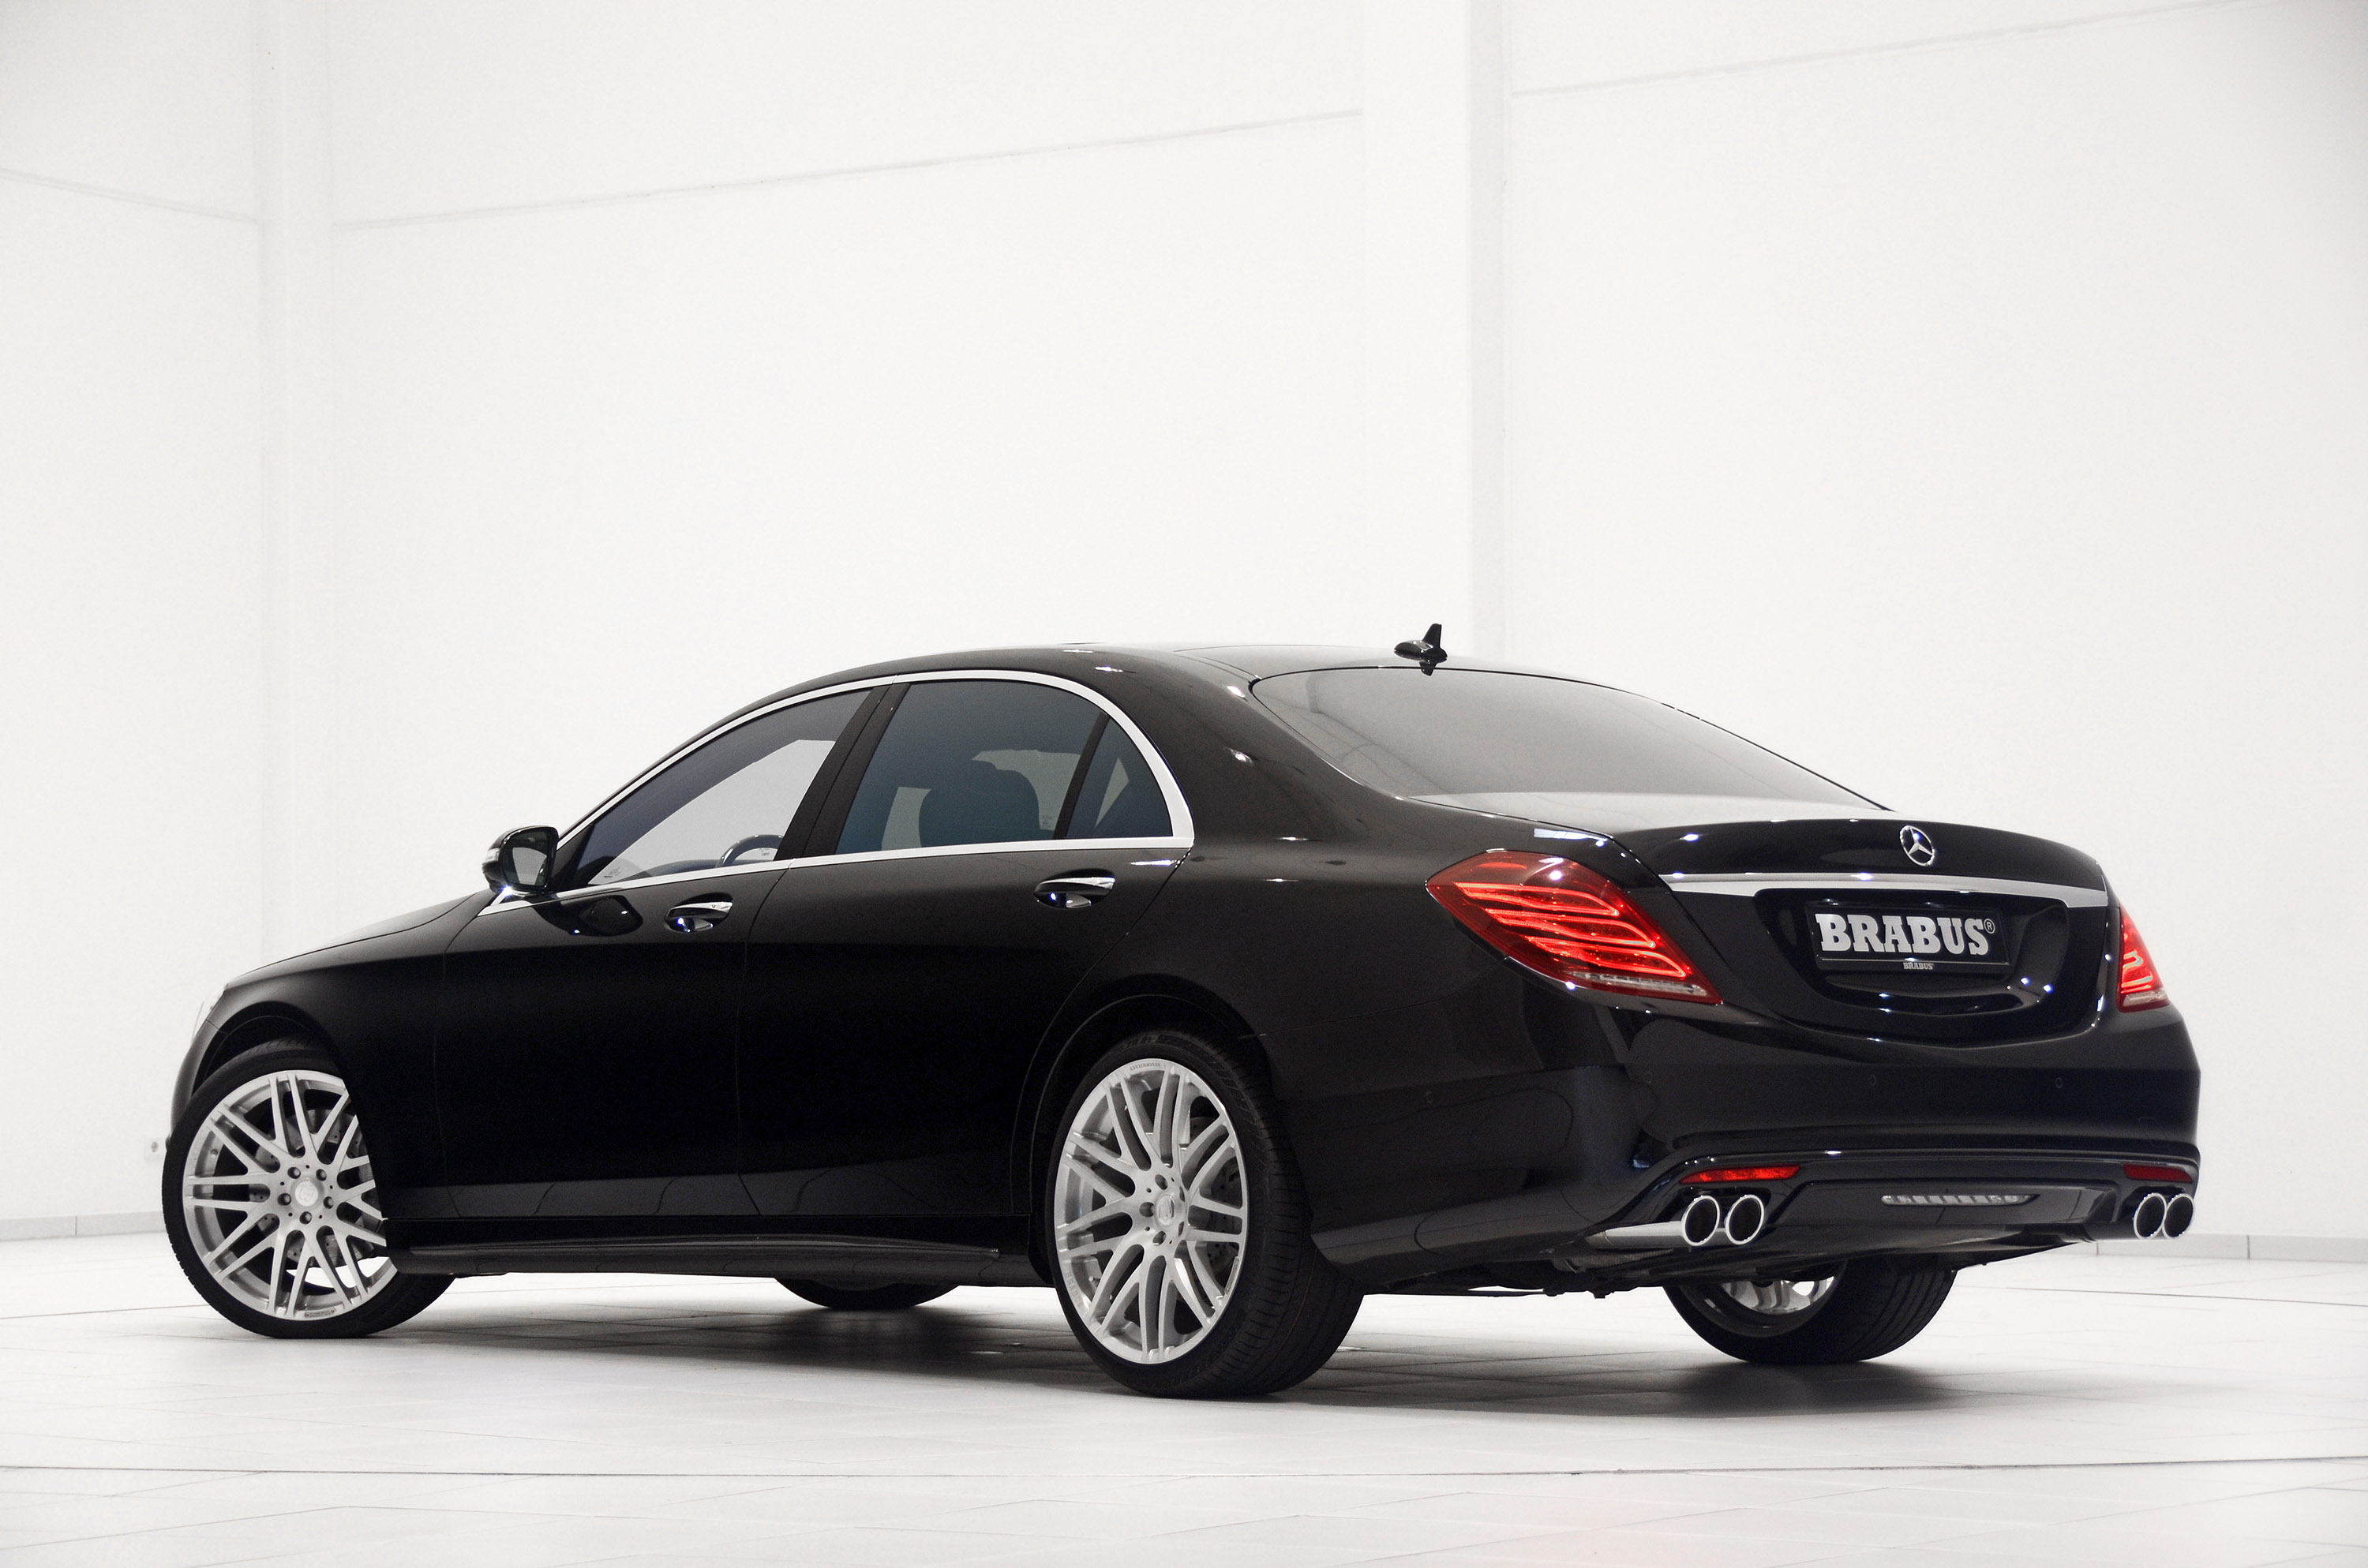 brabus 2014 mercedes benz s class powerful fast. Black Bedroom Furniture Sets. Home Design Ideas